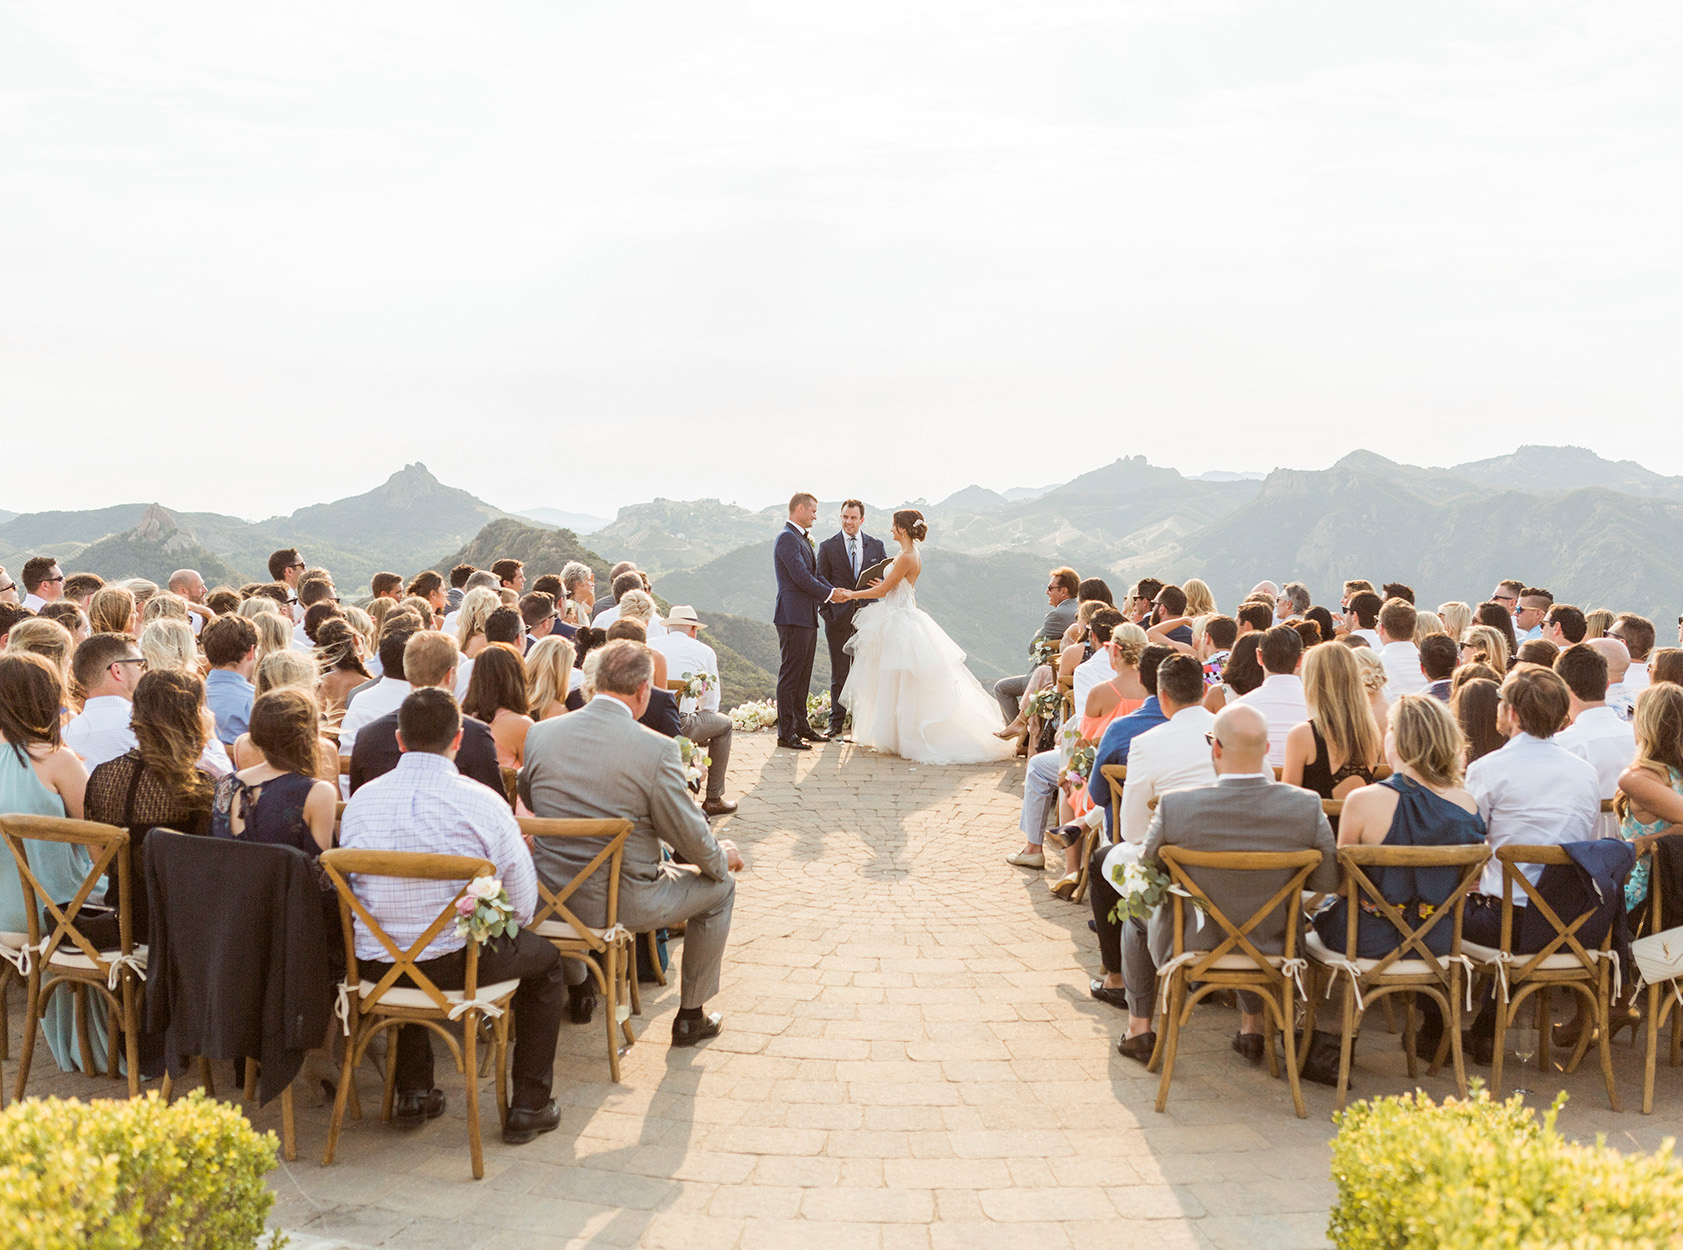 30_malibu rocky oaks wedding.jpg